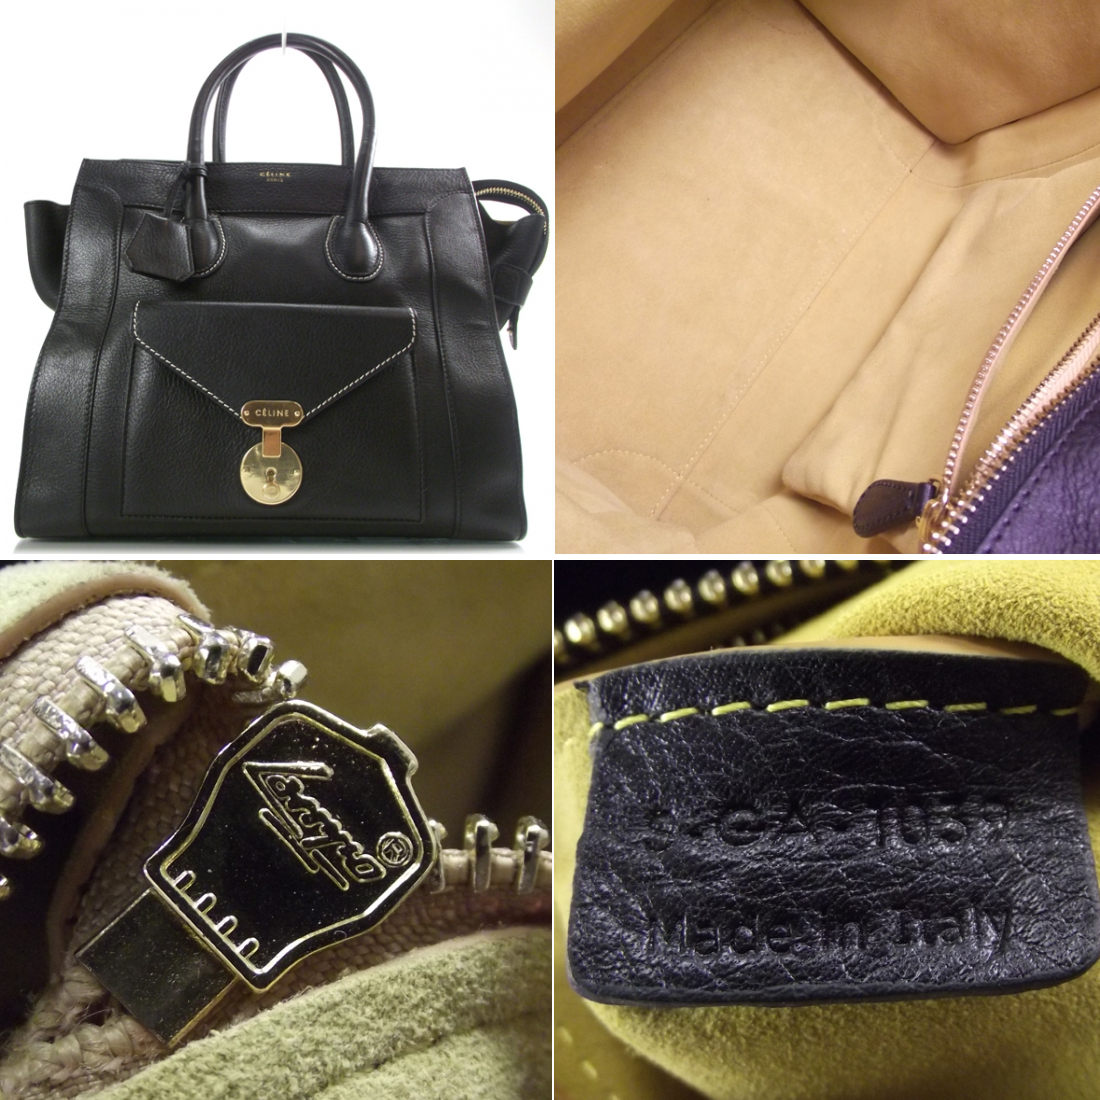 ade5e921c583 Authentication Quiz: Chanel Earrings, Louis Vuitton Speedy, Hermes ...